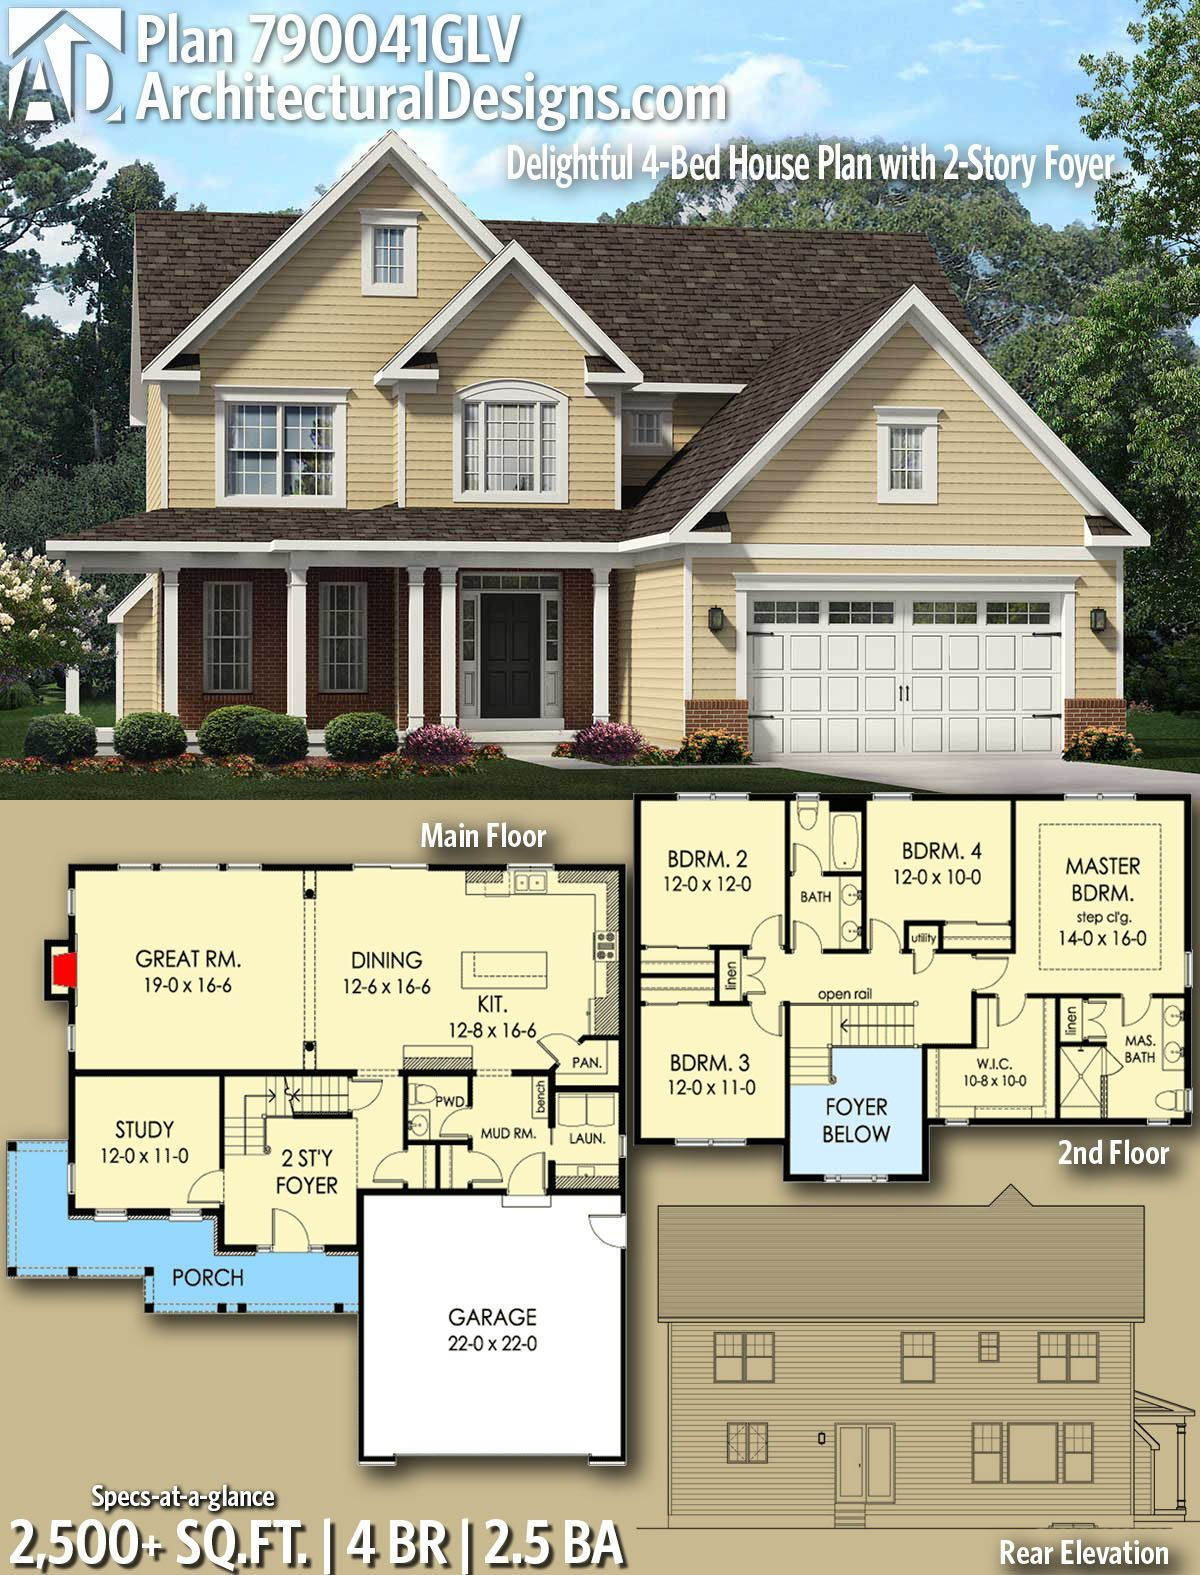 Plan 790041glv Delightful 4 Bed House Plan With 2 Story Foyer In 2020 Sims House Plans House Blueprints House Plans